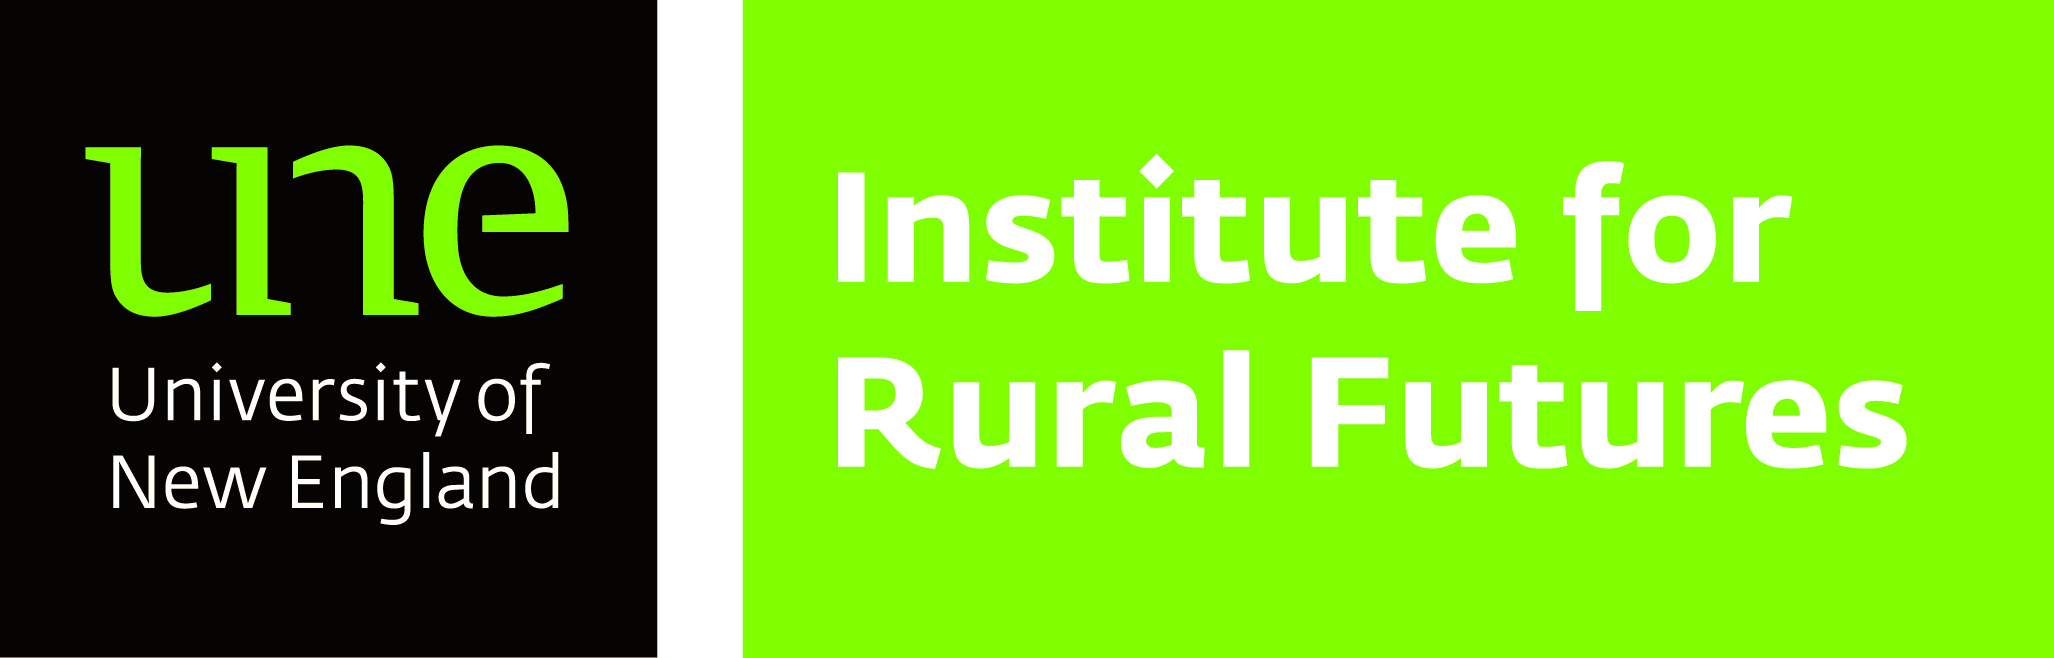 REVISED RURAL FUTURES LOGO LOCKUP